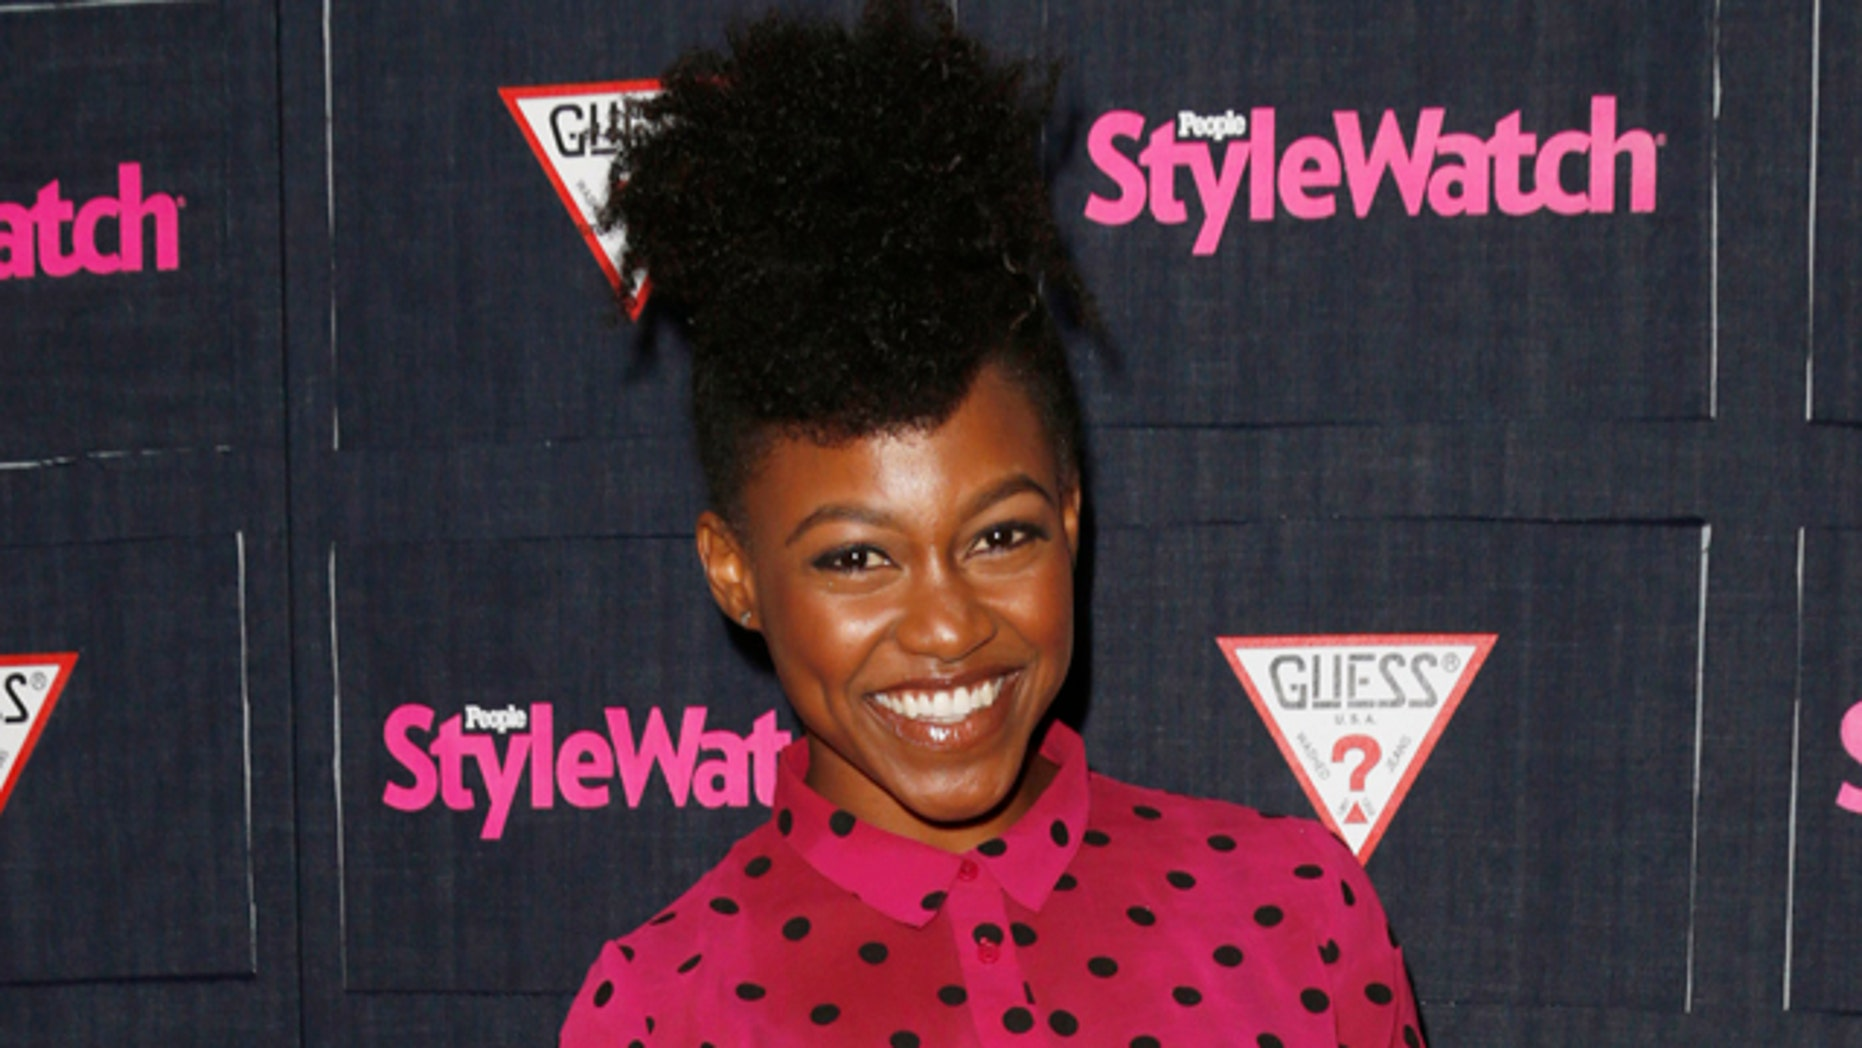 FILE -- In this Sept. 20, 2012 file photo, Daniele Watts attends The Hollywood Denim Party at Palihouse in West Hollywood. (Photo by Todd Williamson/Invision/AP, File)